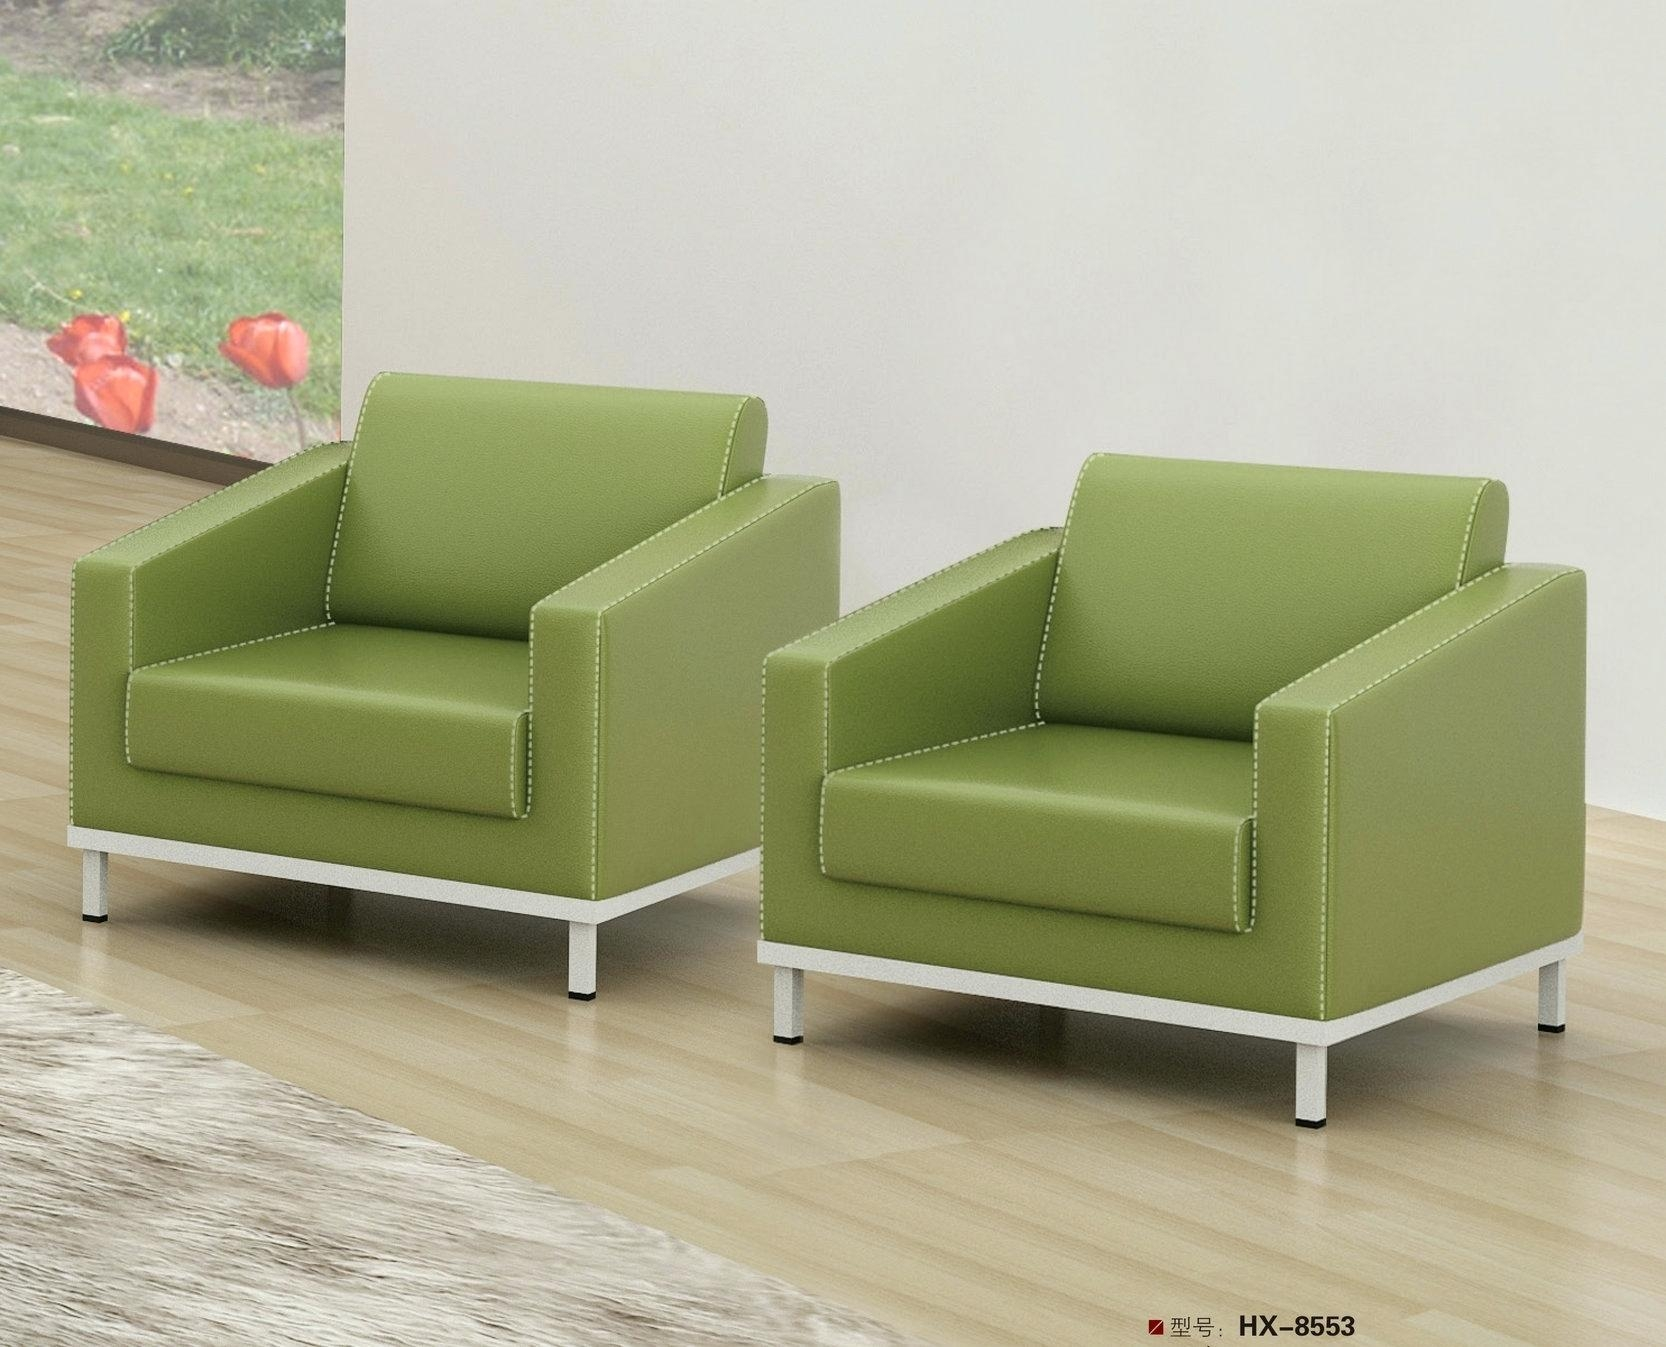 Red Leather Sofa Beds Office Combination Sofashunde Kika Furniture With Regard To Old Fashioned Sofas (View 12 of 15)